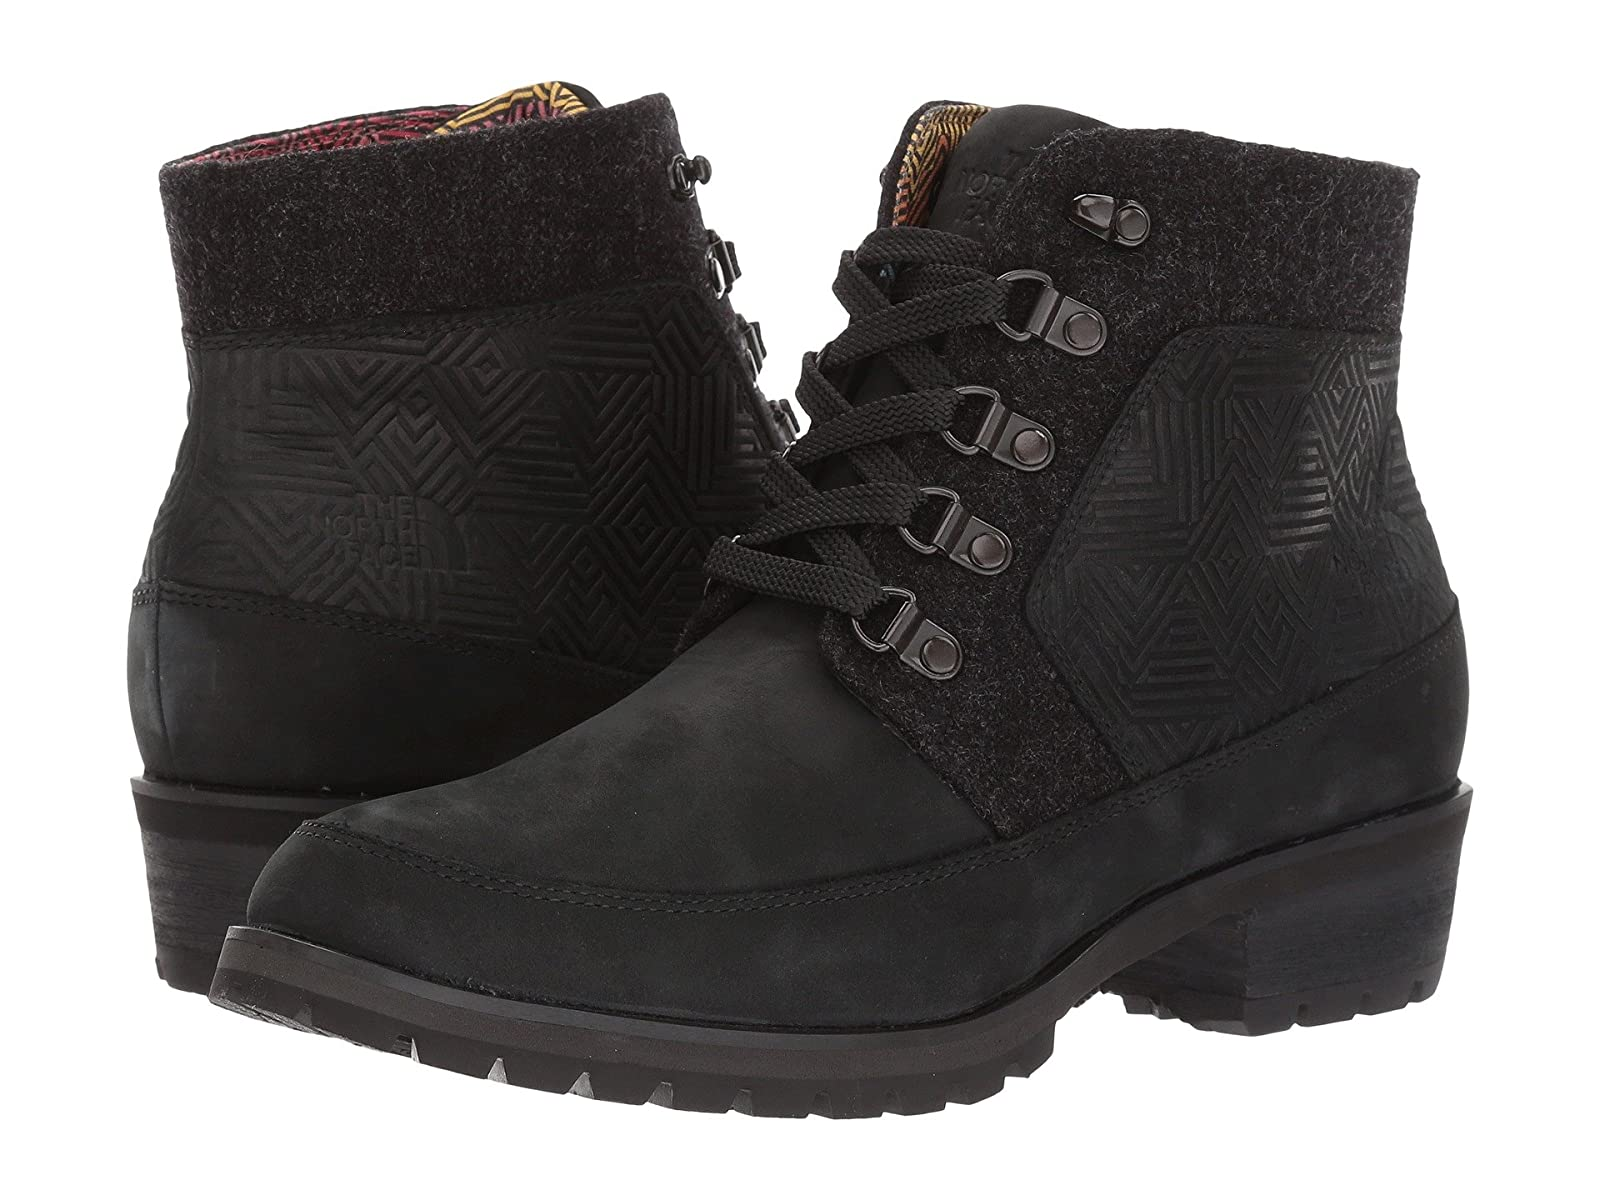 The North Face Bridgeton Ankle LaceCheap and distinctive eye-catching shoes